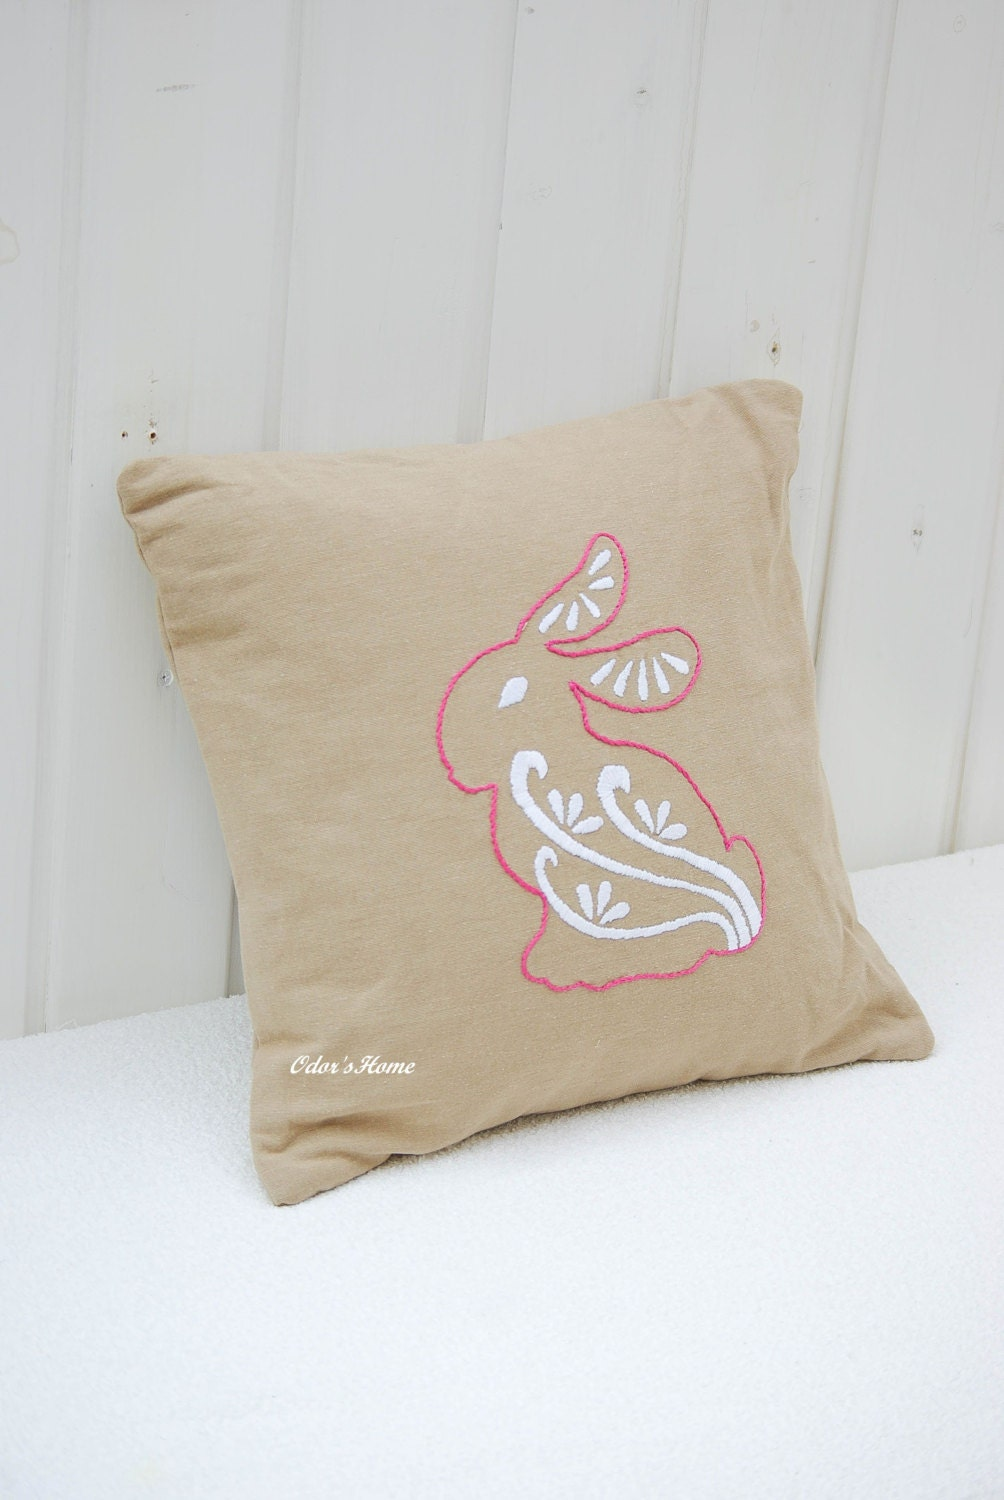 Beige linen cotton pillow case with hand embroidered bunny in pink and white, linen decorative pillow - OdorsHome